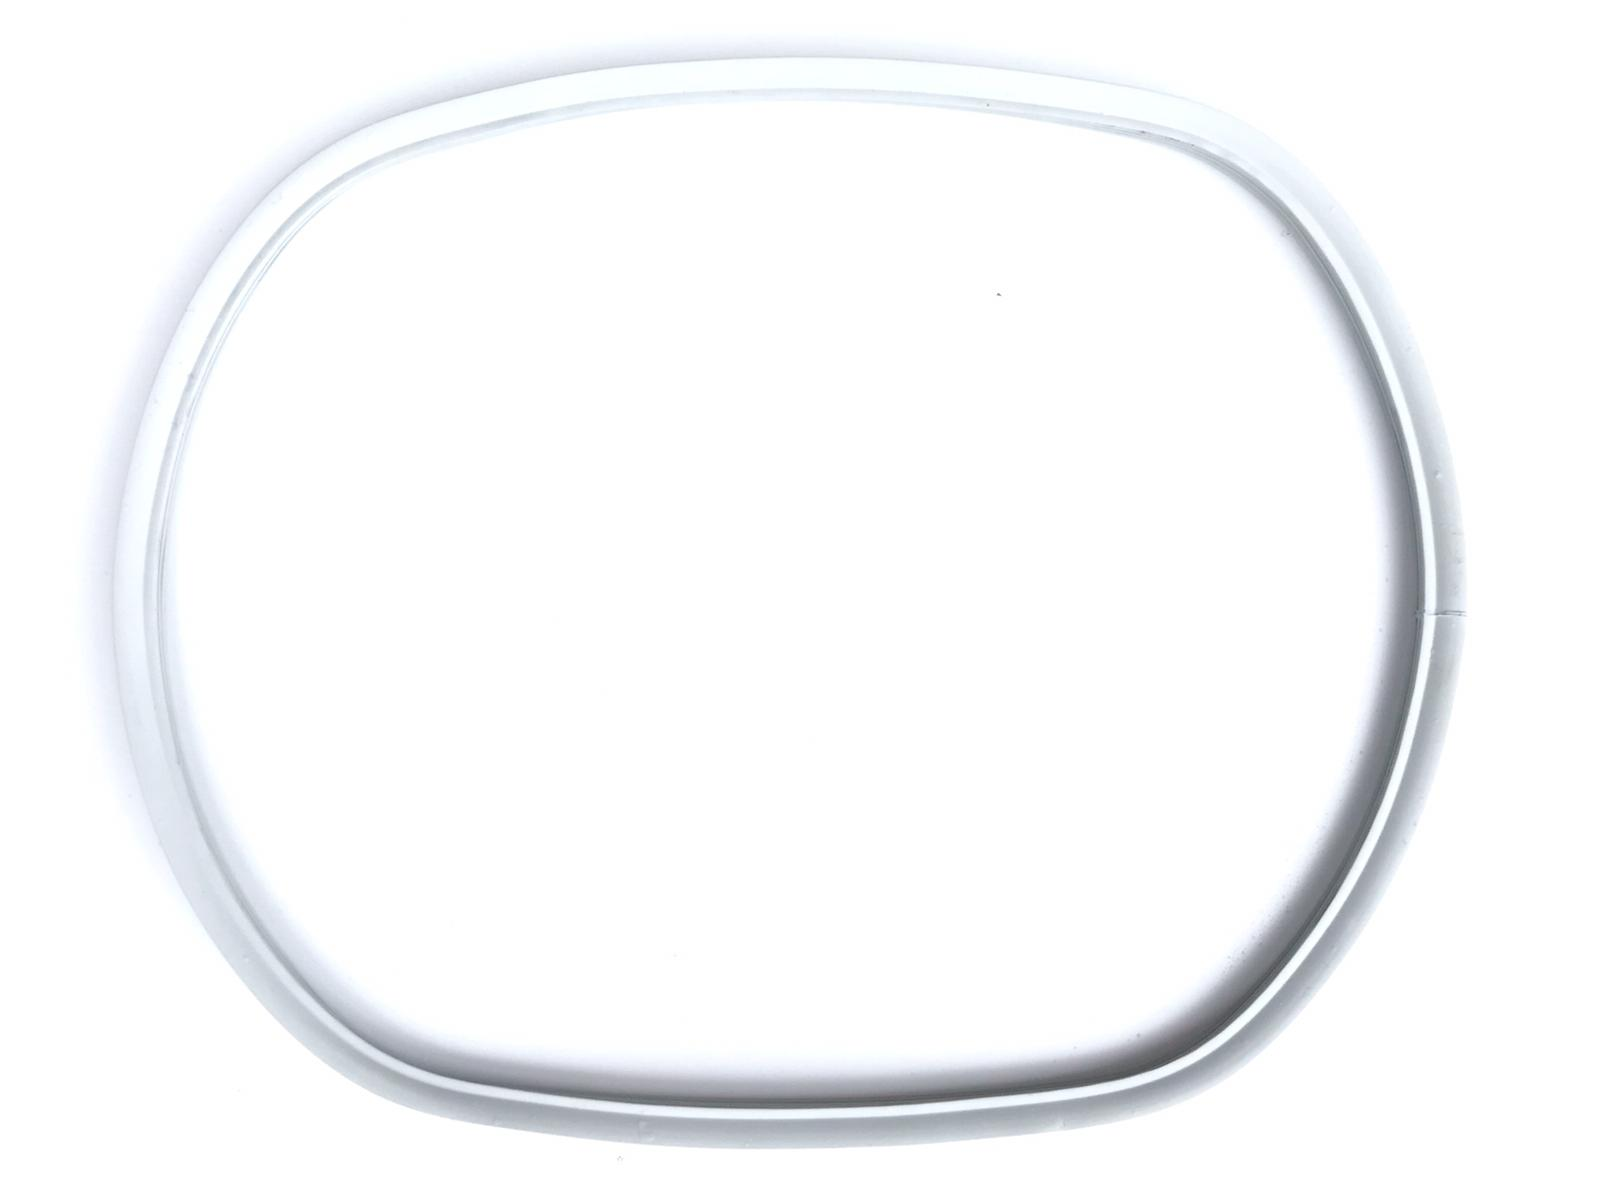 Door Gasket For Hoover DX H9A2TCEX-S Dryer Machine 40005393